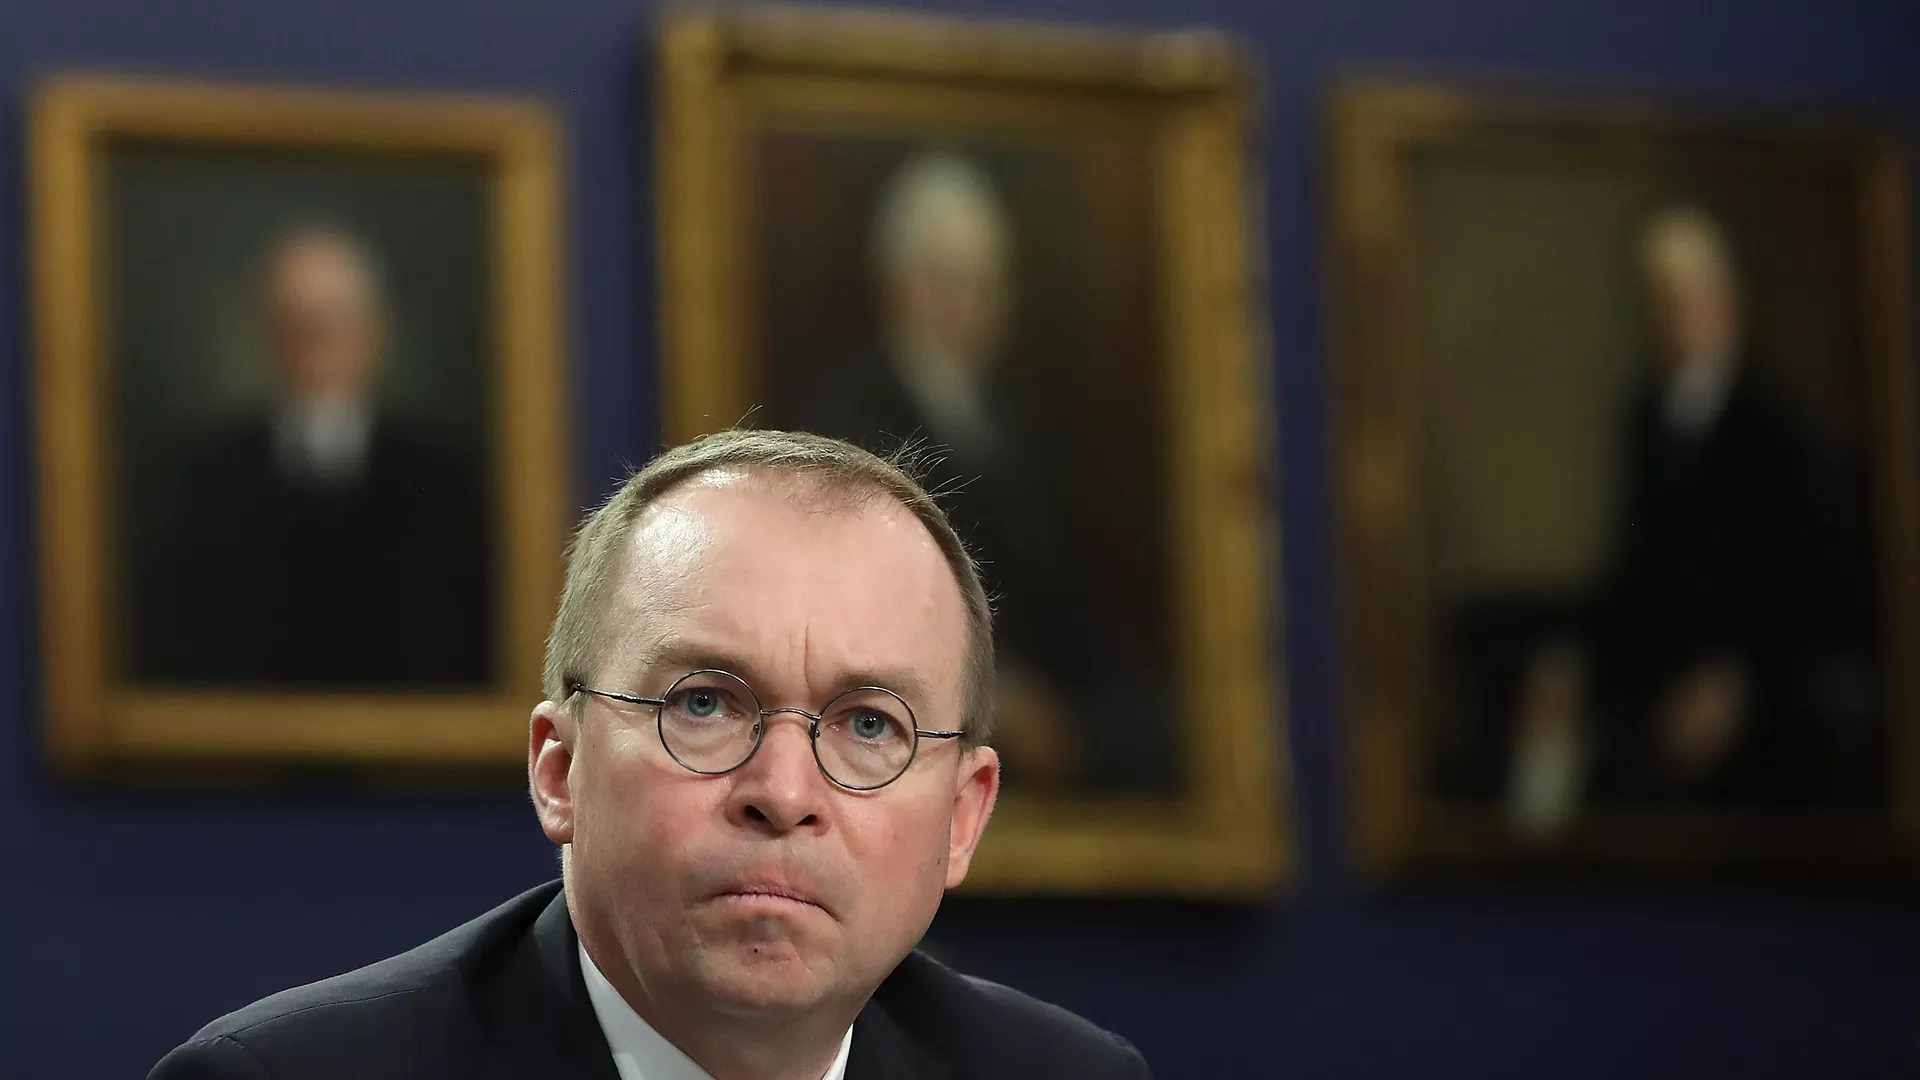 Consumer Financial Protection Bureau  CFPB    Axios Mick Mulvaney looking straight at the camera with an unhappy look on his  face